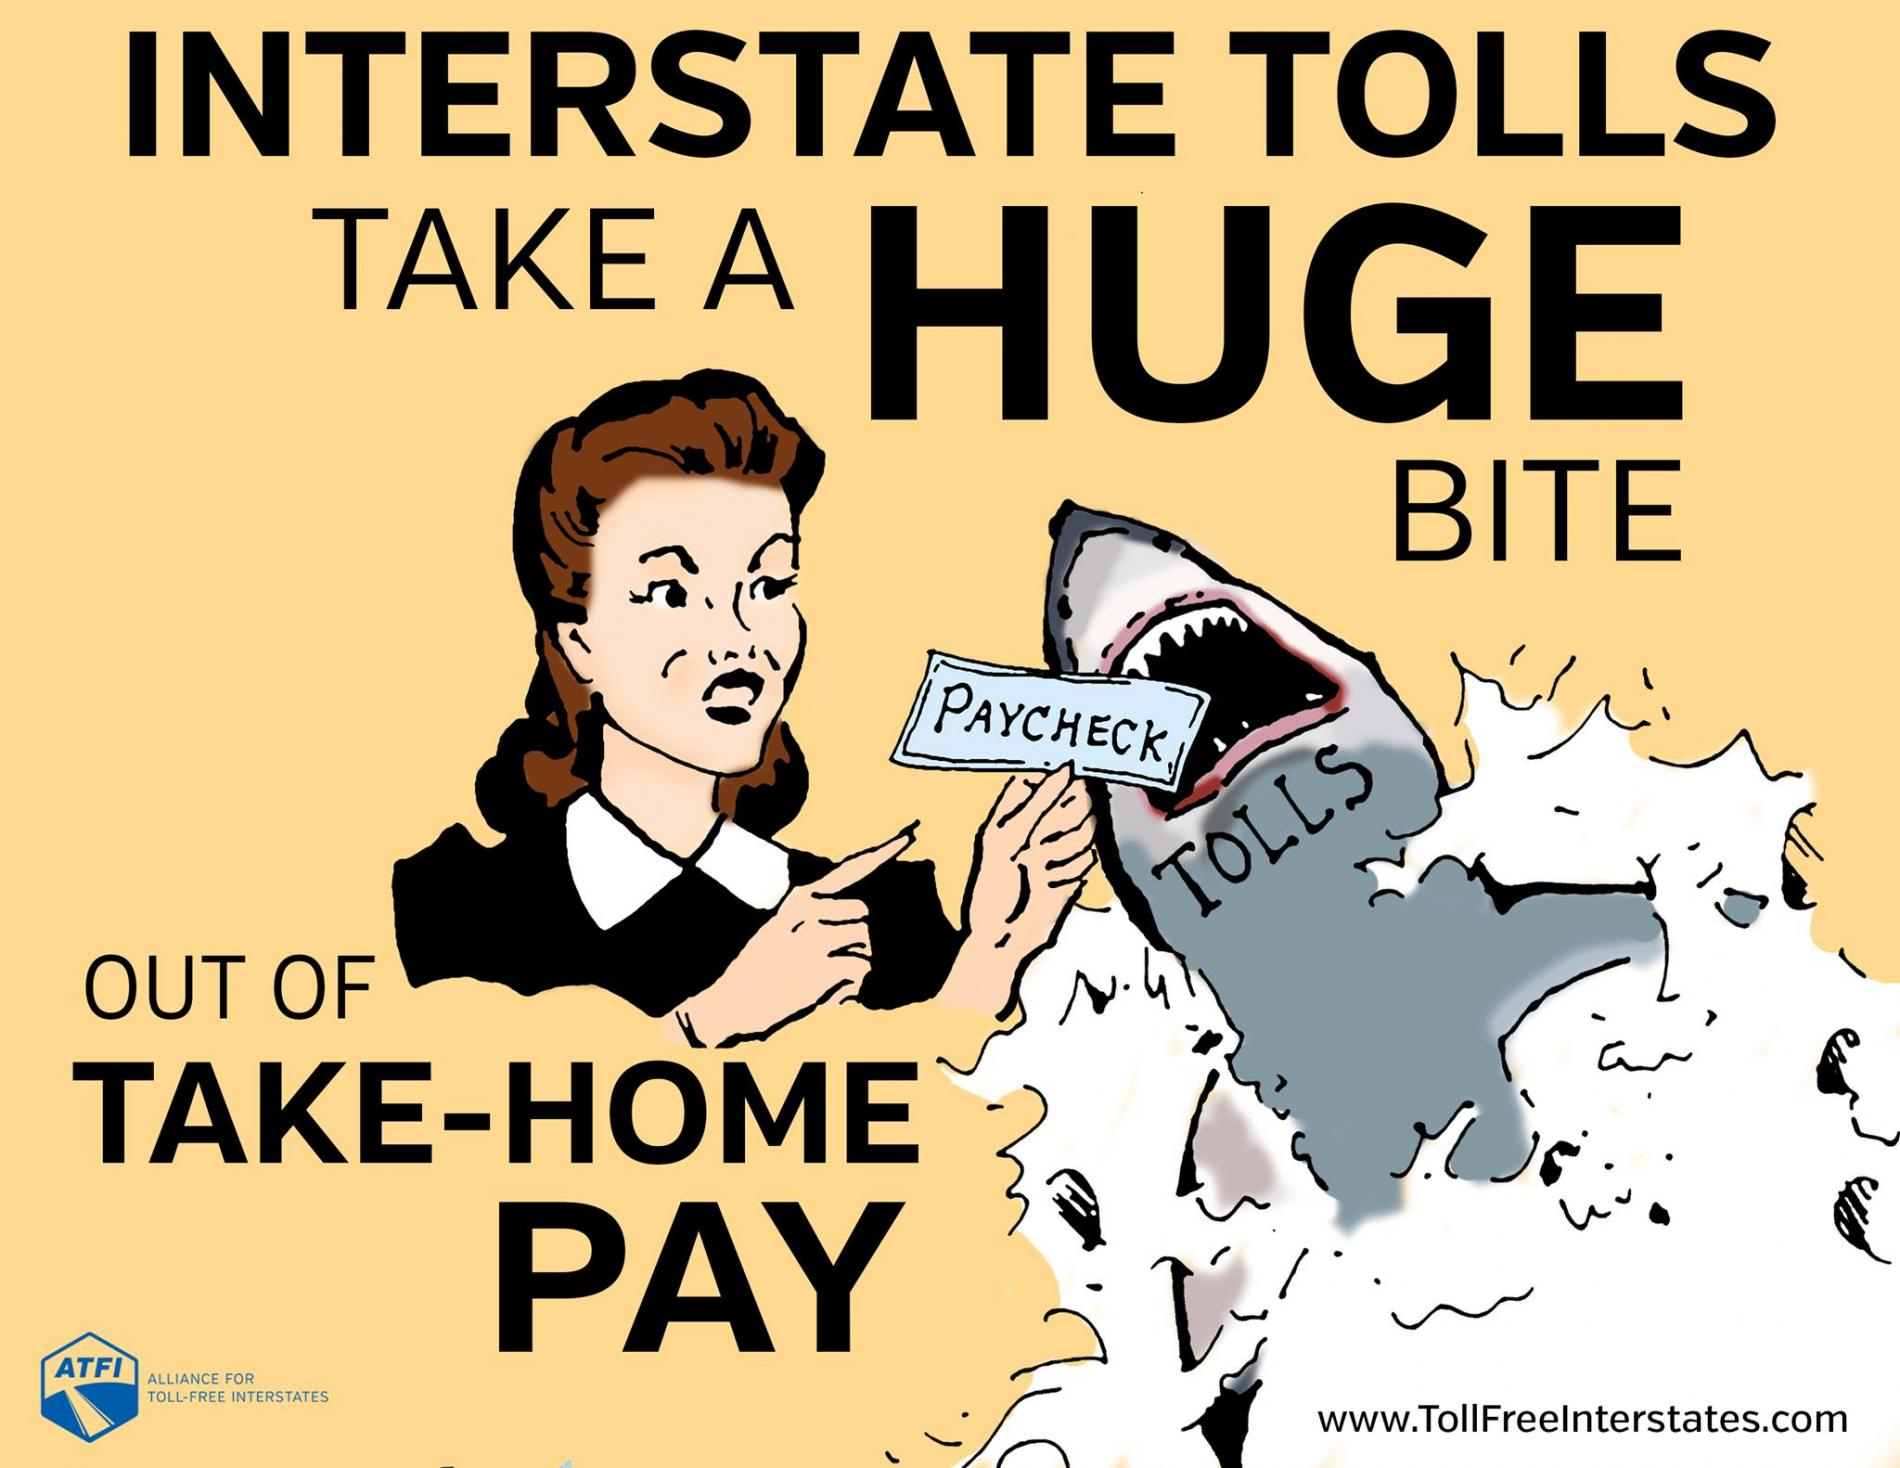 Interstate Tolls